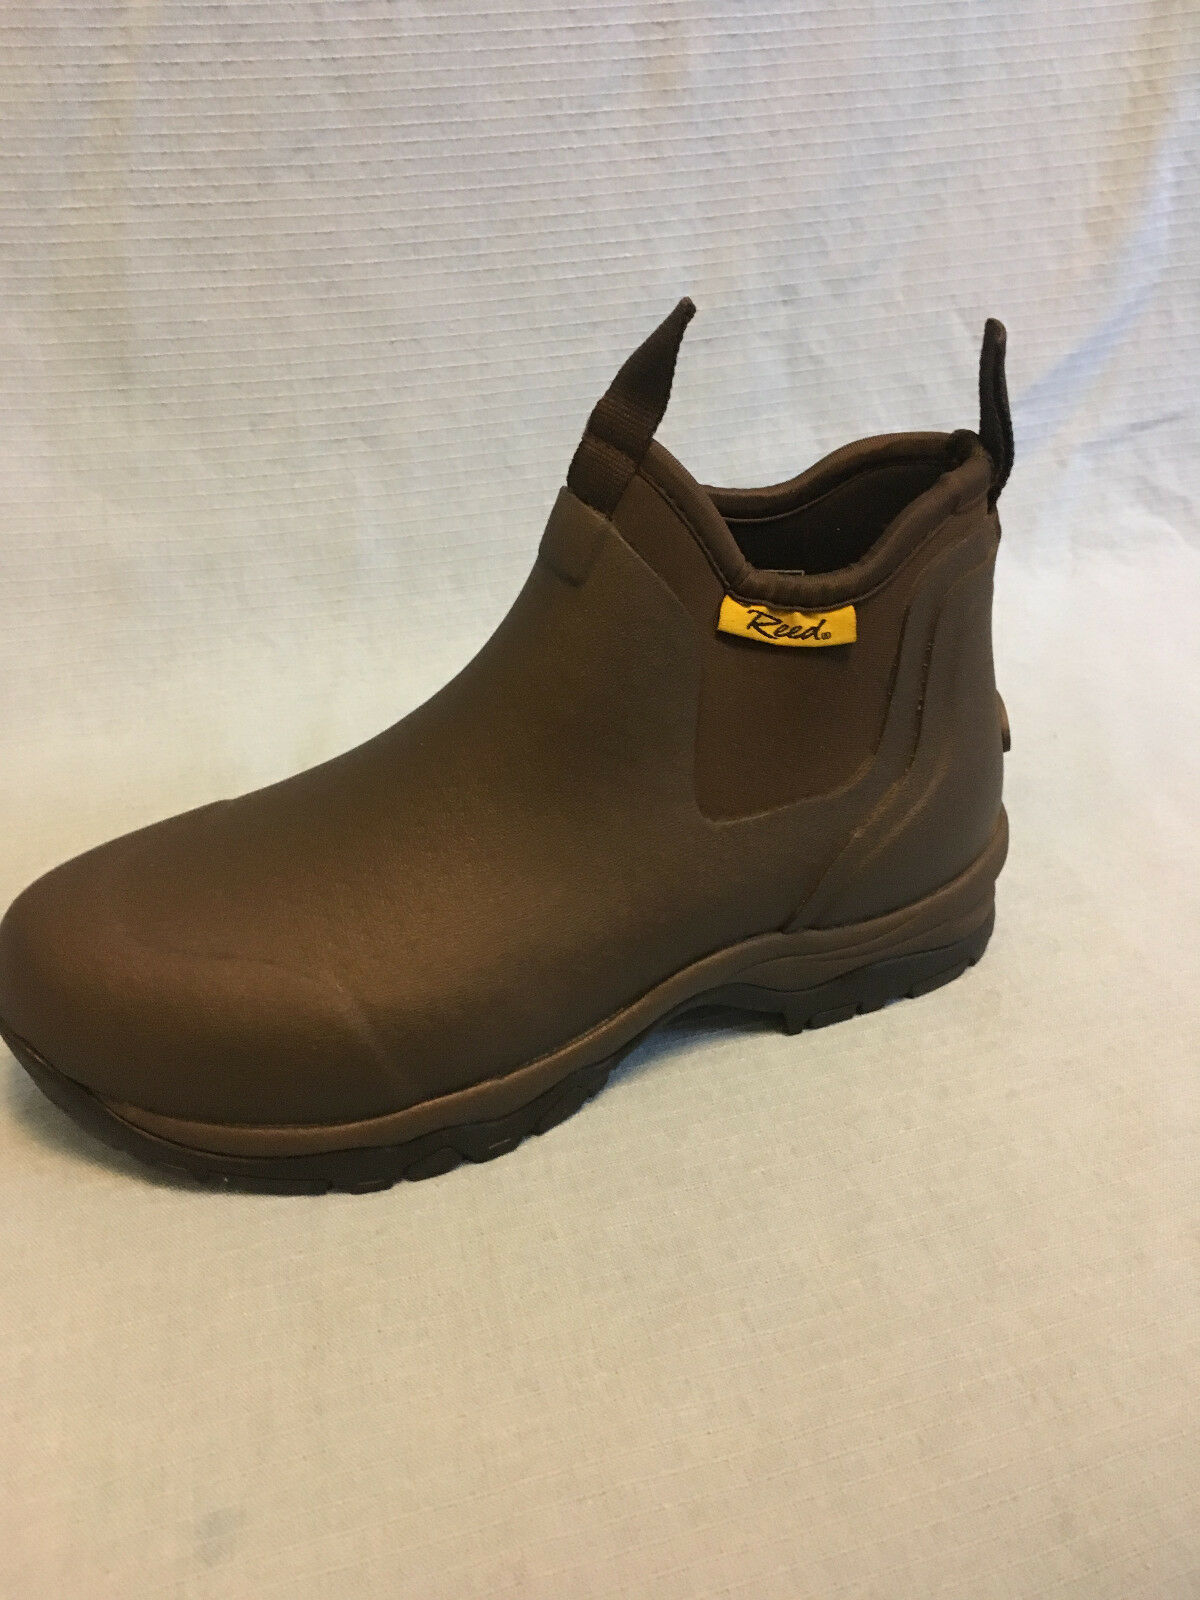 Reed Outdoor Work Boots - Kent Romeo Slip-On - Brown - Men's size 13